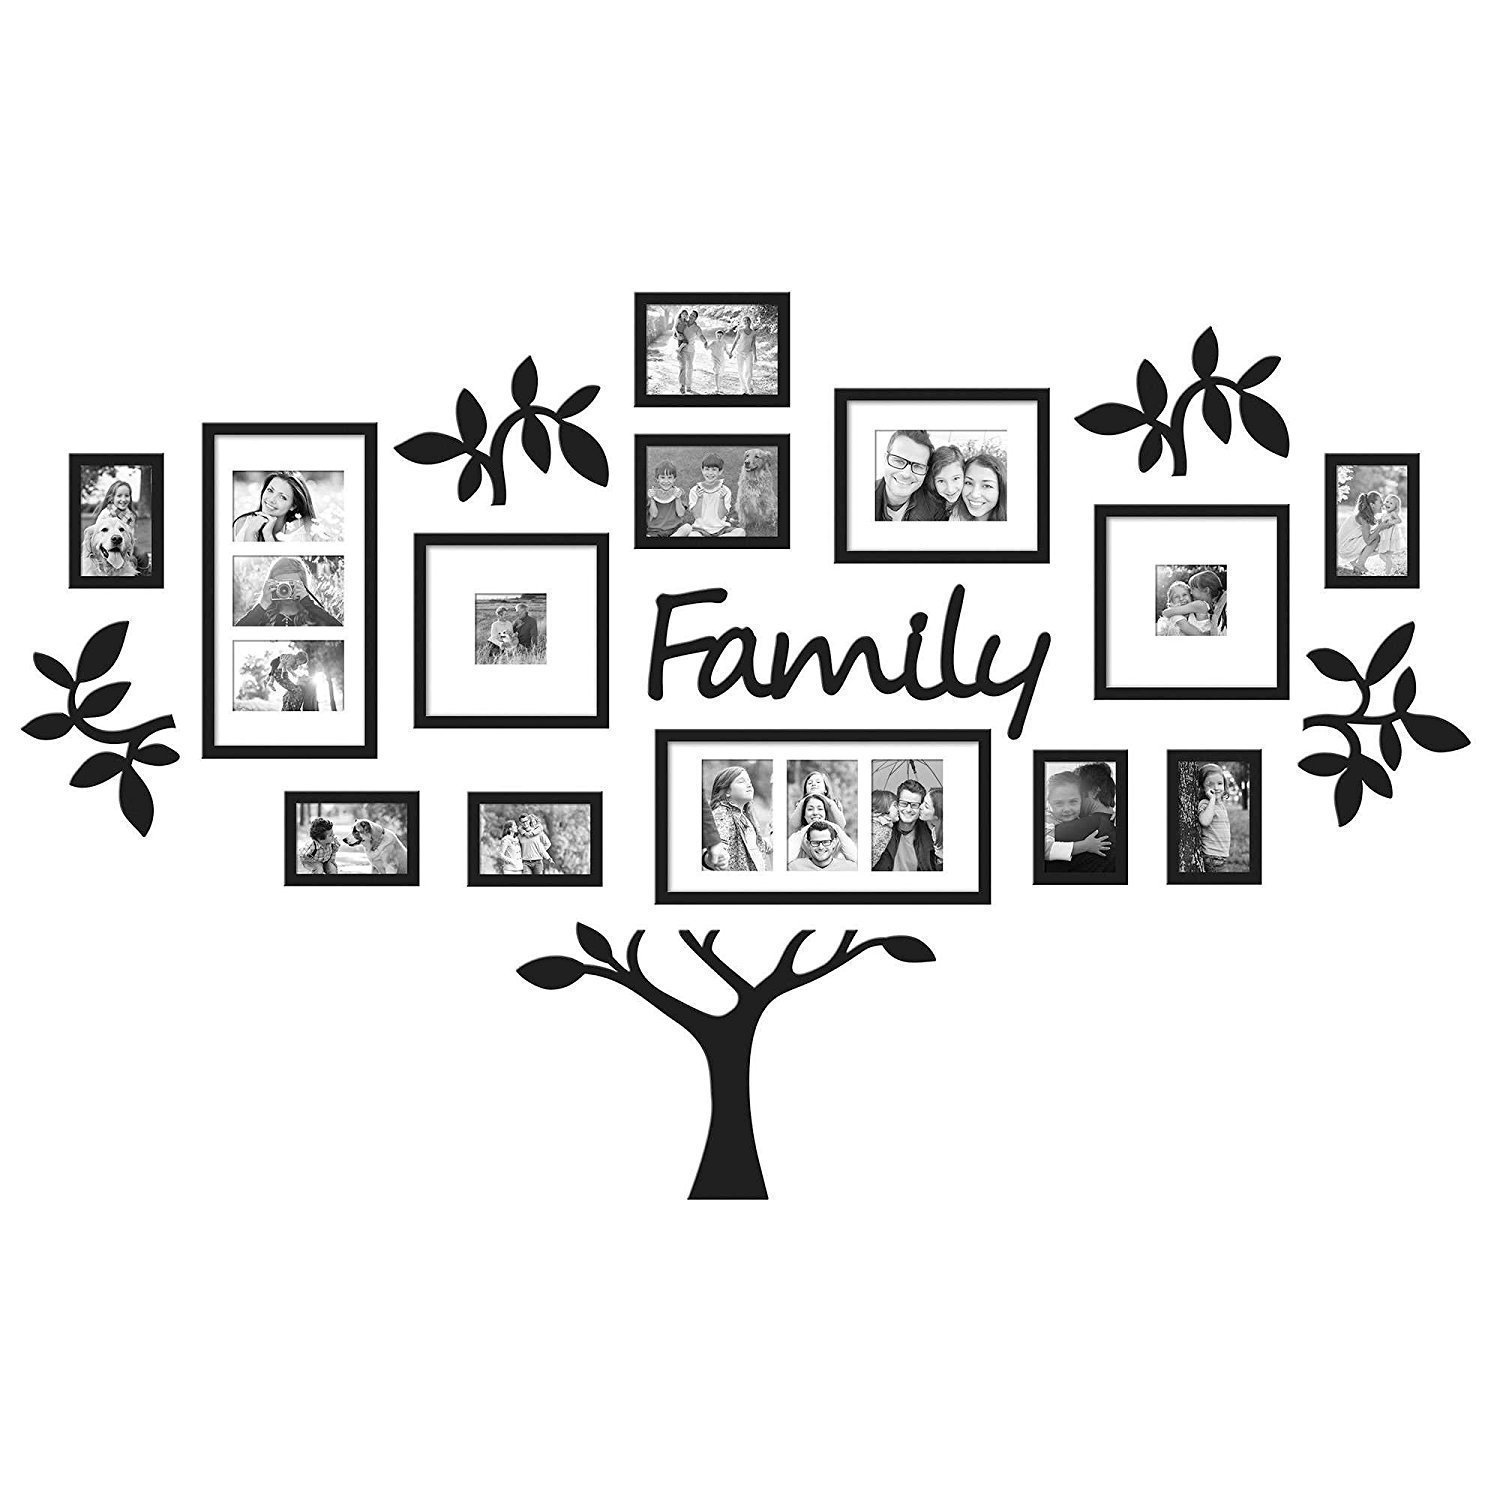 Family Tree Wall Photo Frame Set Picture Collage Home Decor Art Gift